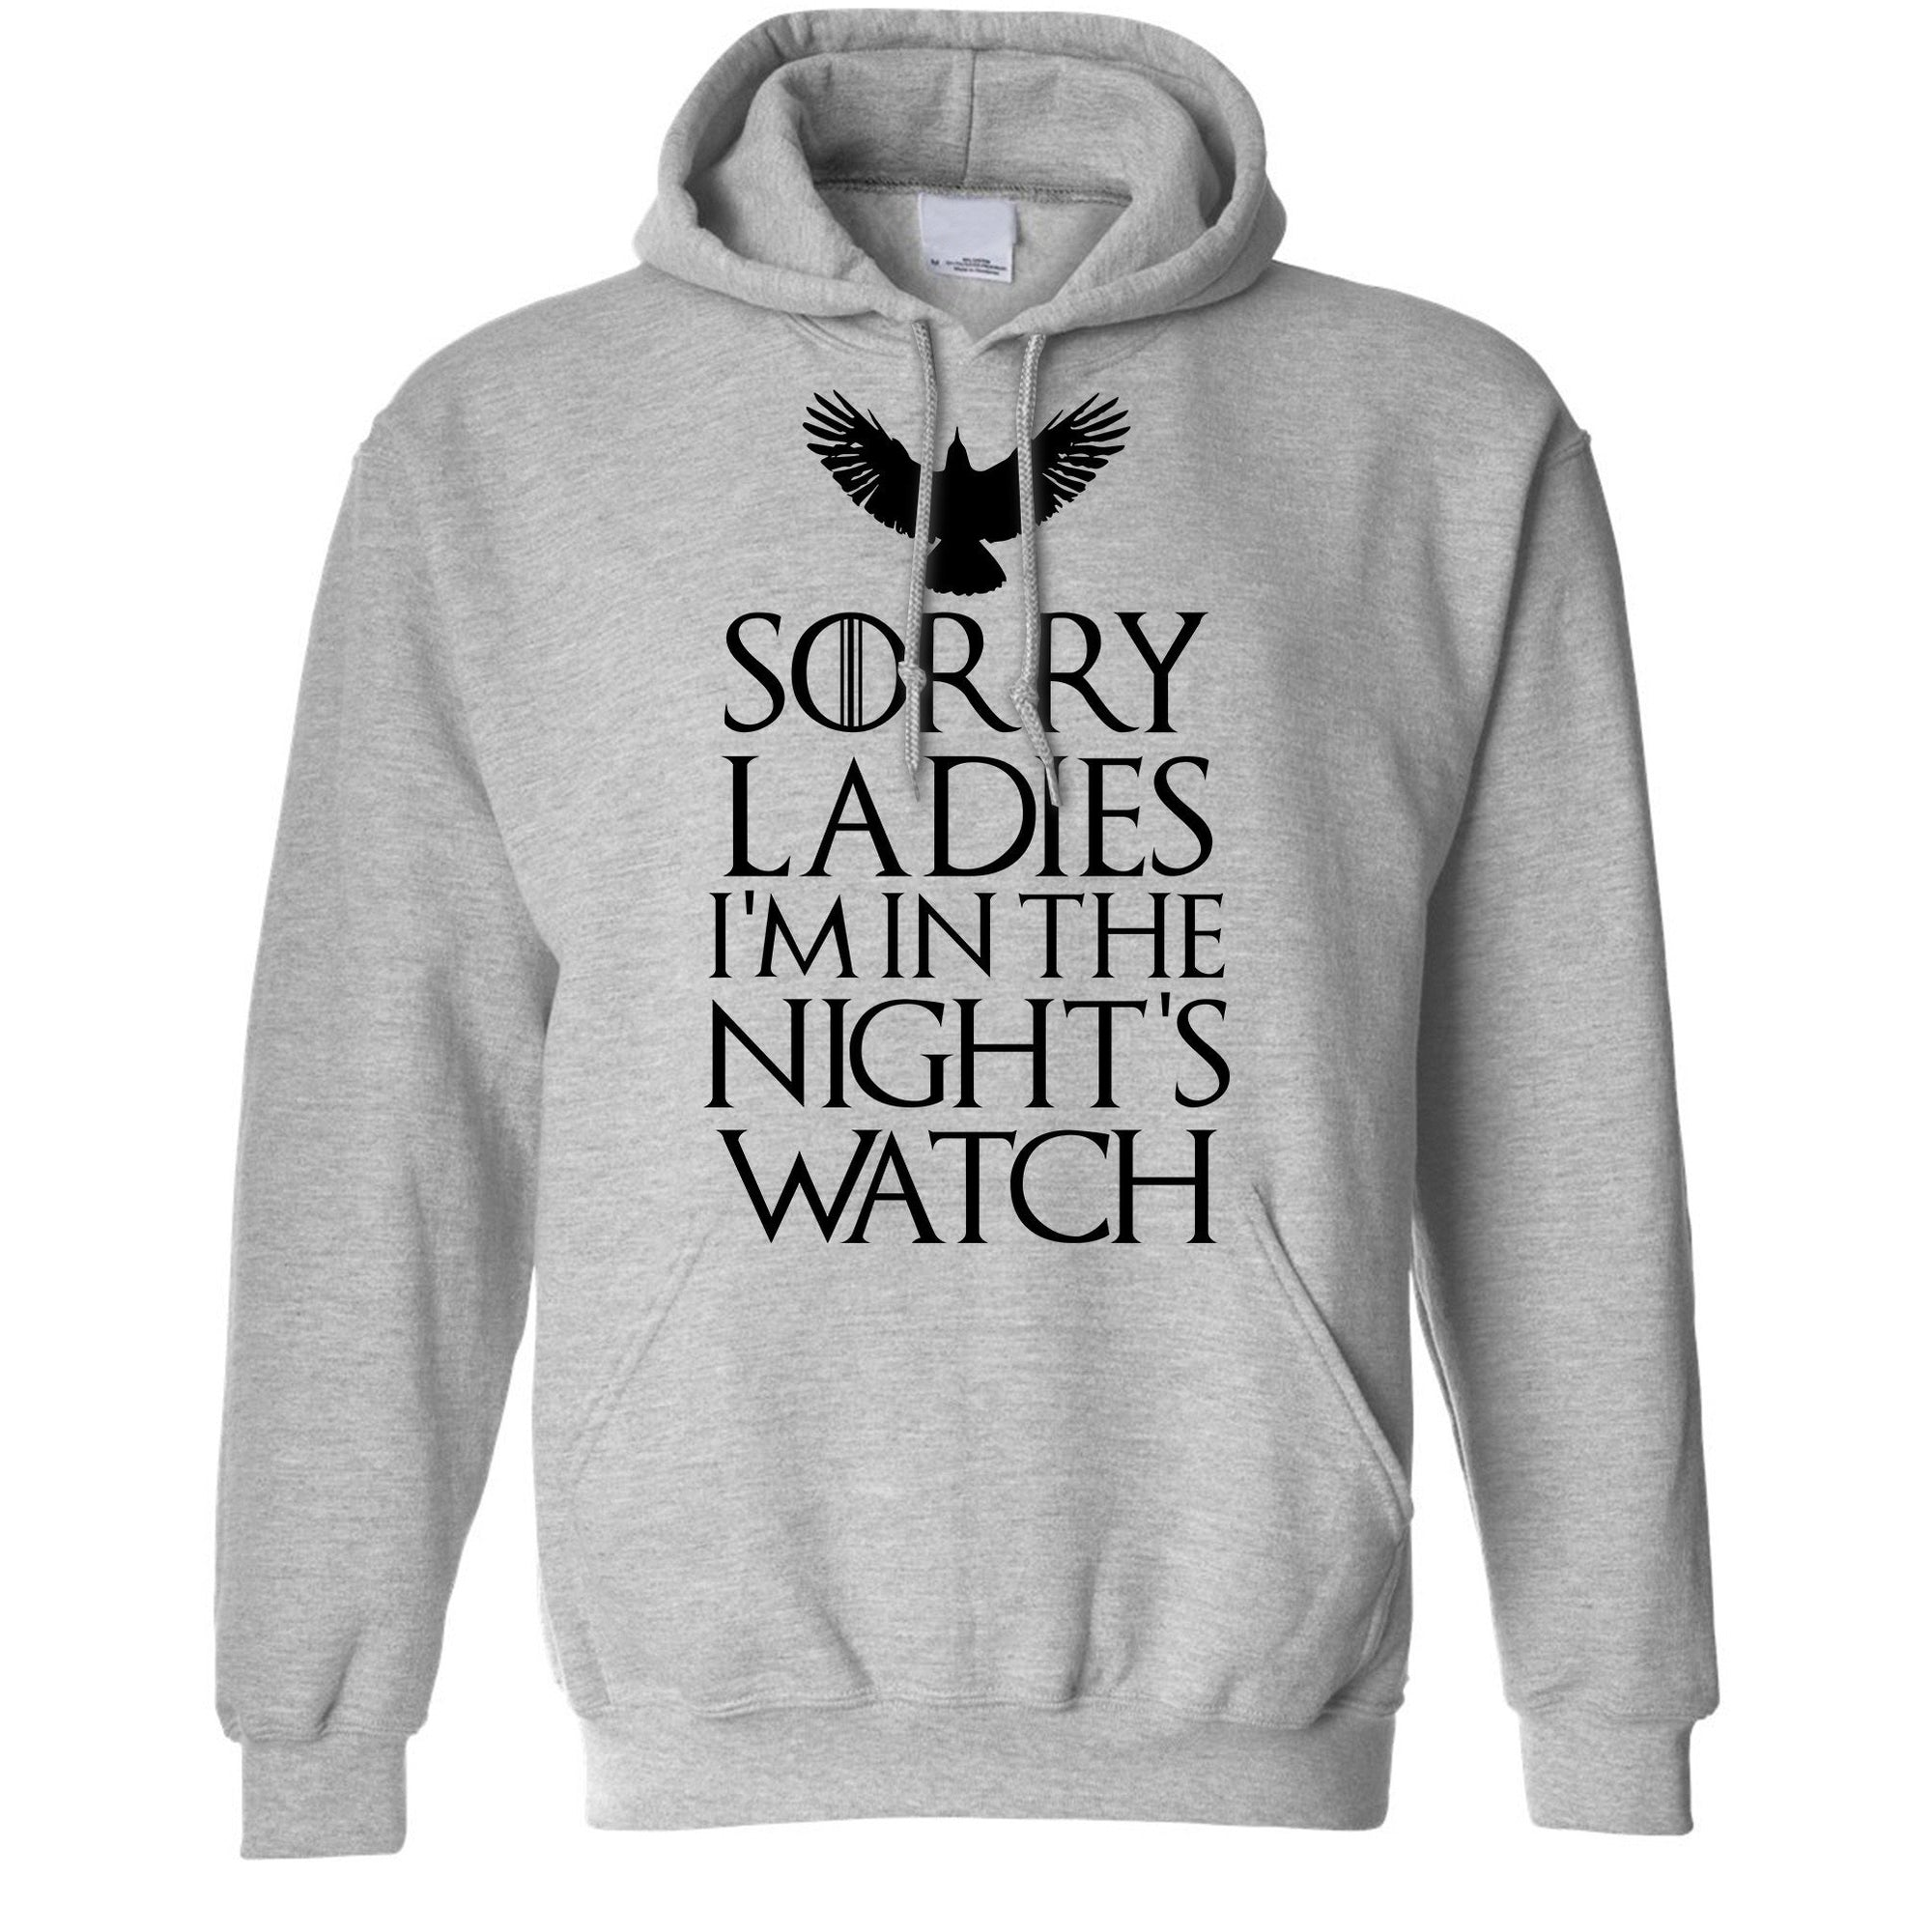 Sorry Ladies I'm In The Nights Watch Hoodie